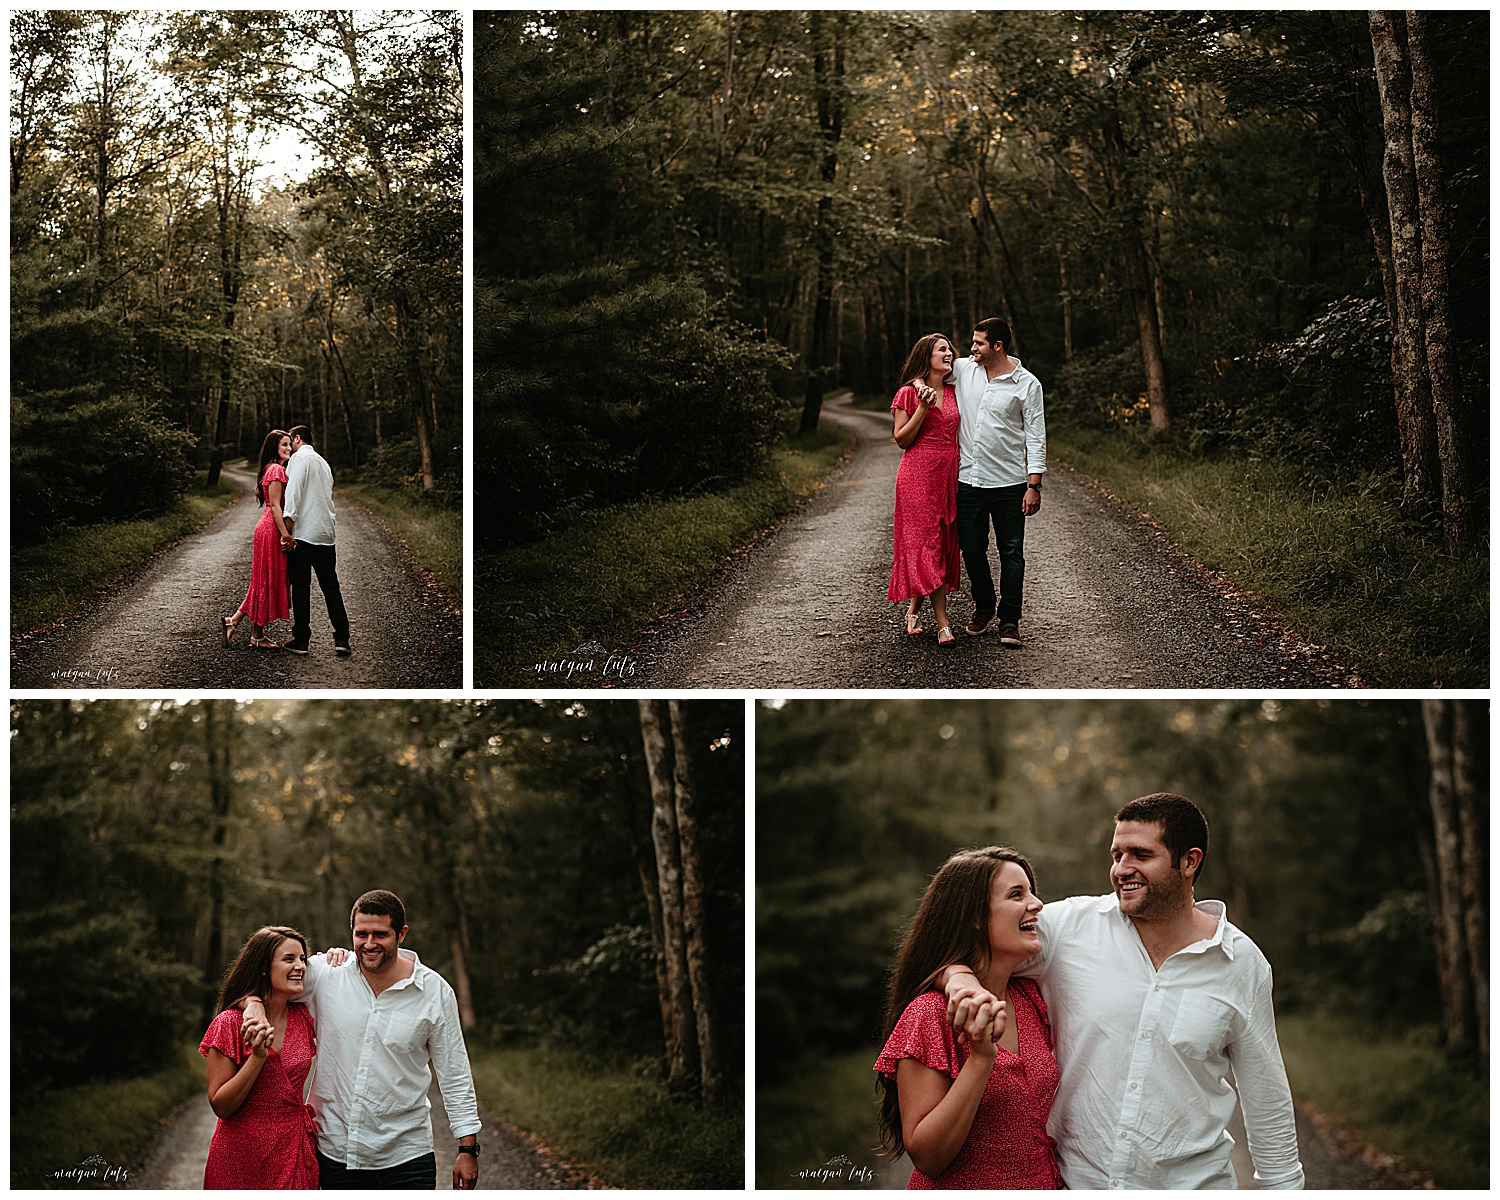 NEPA-Mount-Pocono-Lehigh-Valley-Wedding-Engagement-photographer-at-Hickory-Run-State-Park-Whitehaven-PA_0013.jpg